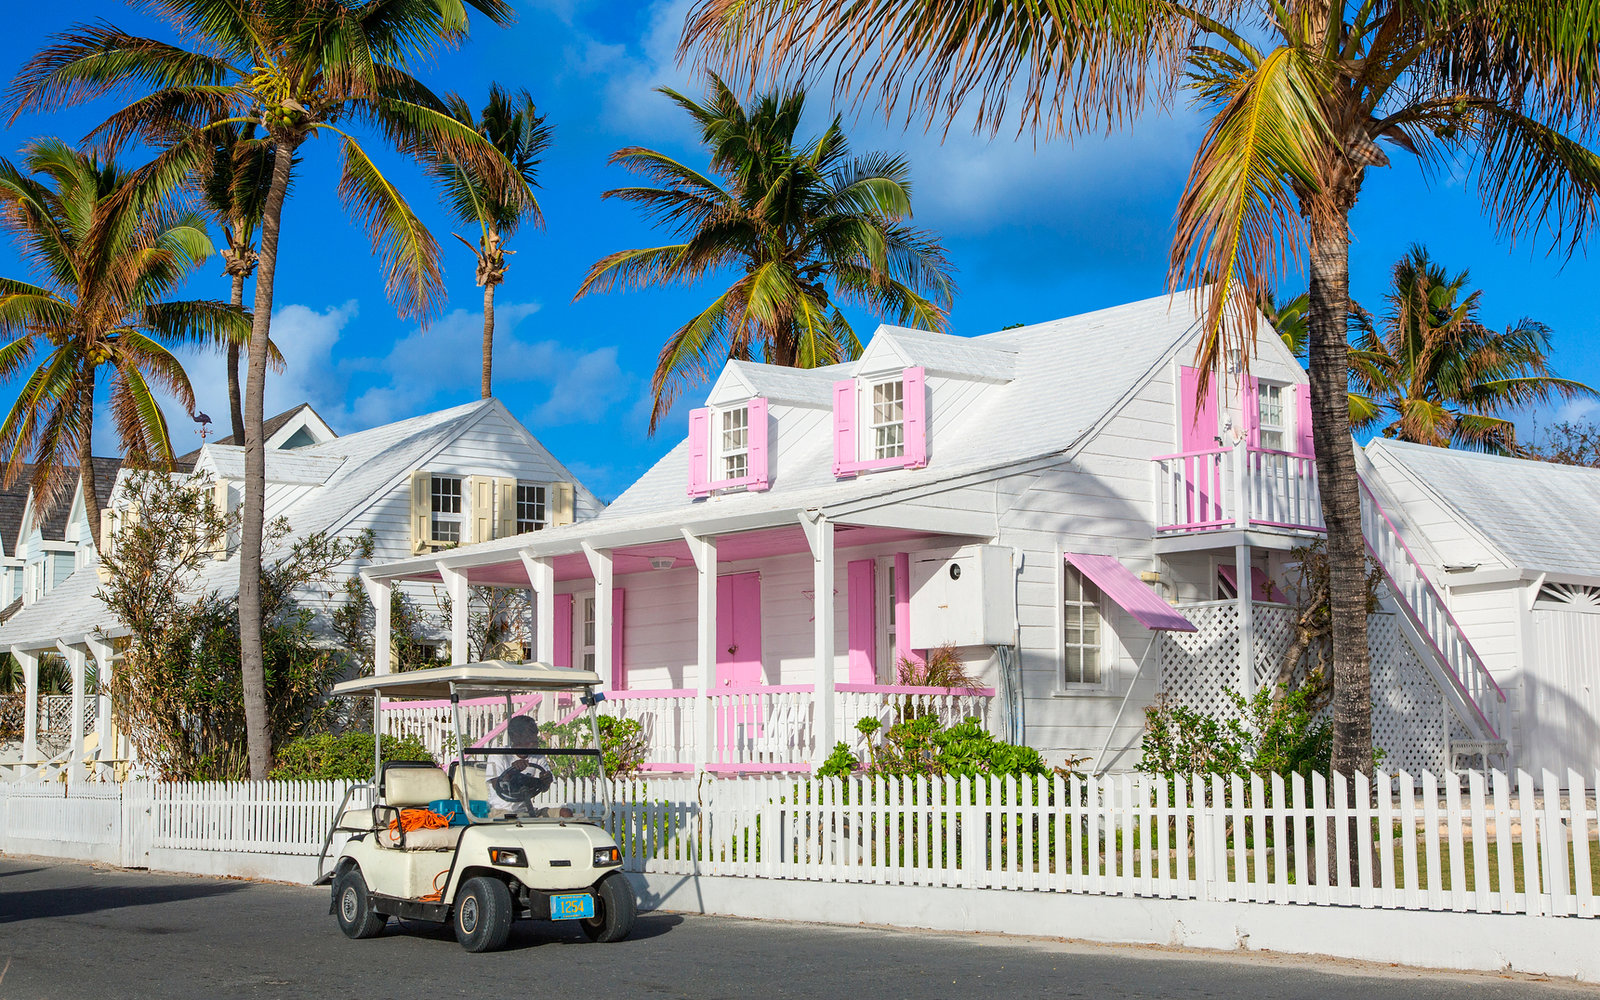 No. 2: Harbour Island, Bahamas